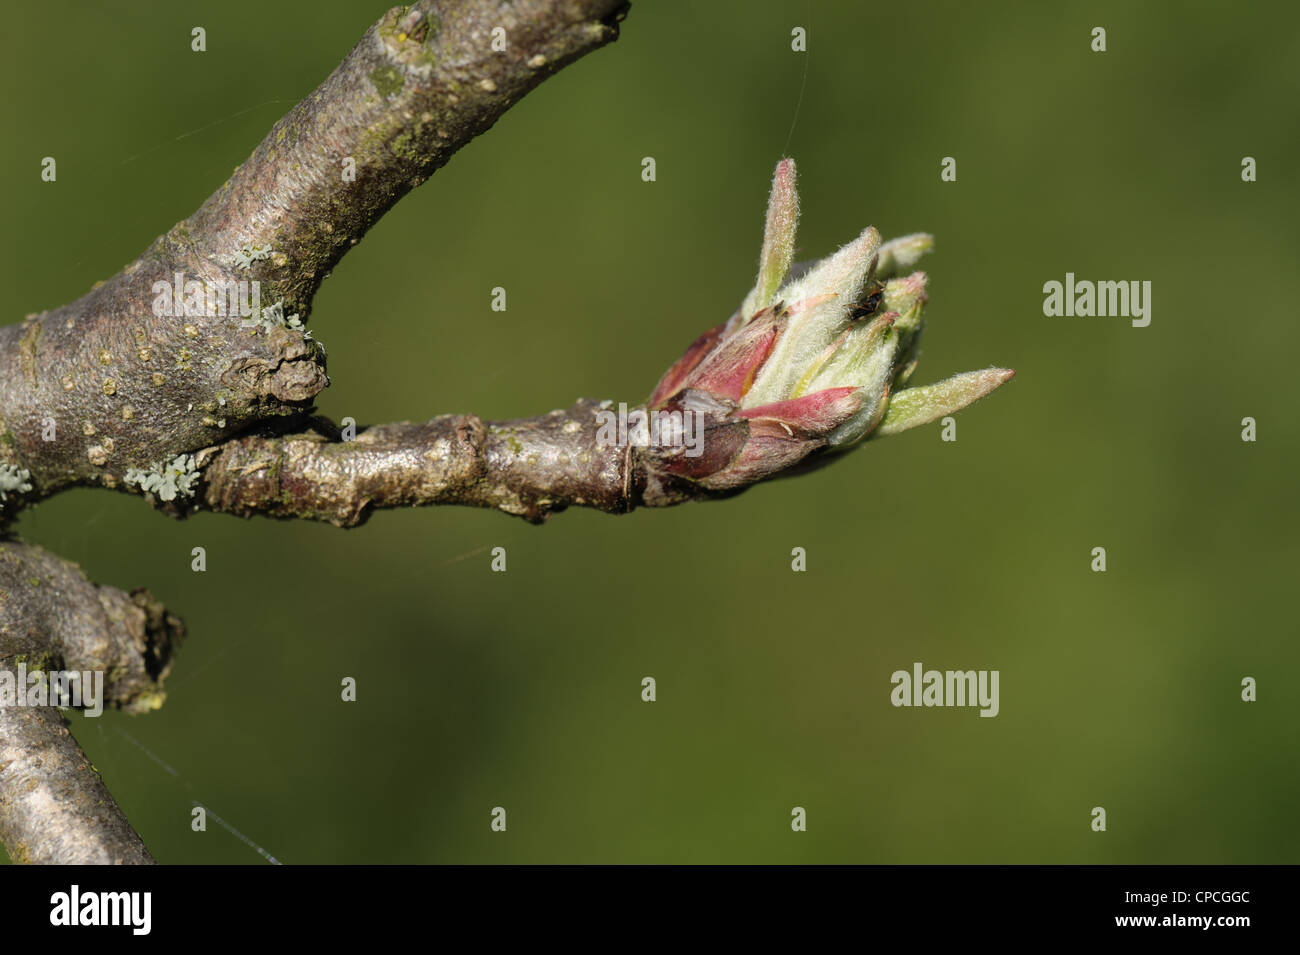 Apple bud on a short twig with leaves expanding in spring Stock Photo